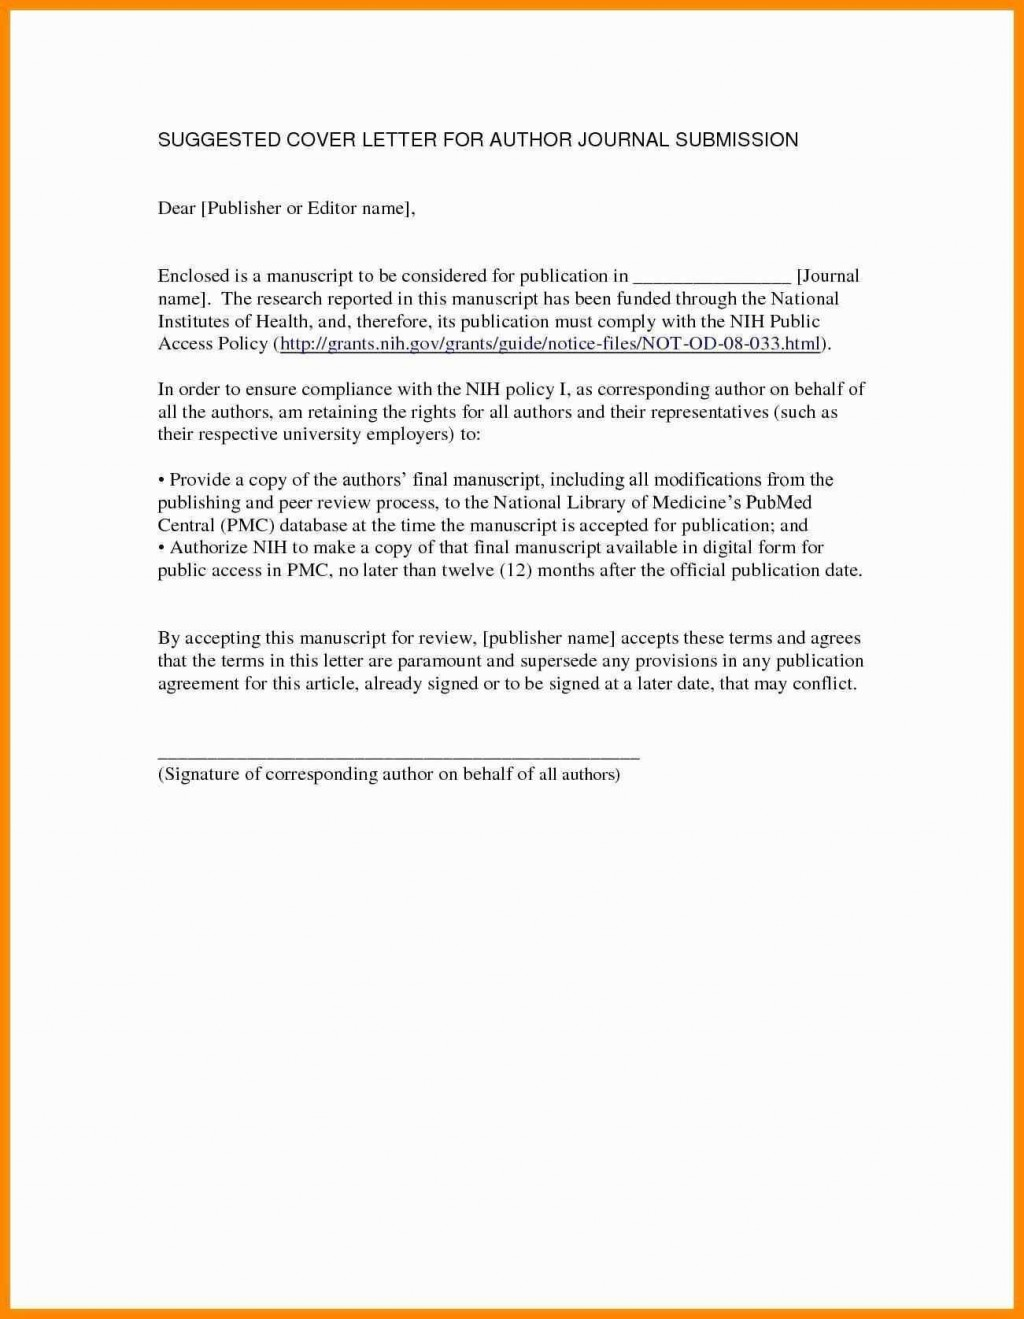 005 Cover Letter For Research Paper Striking Publication Manuscript Article Large